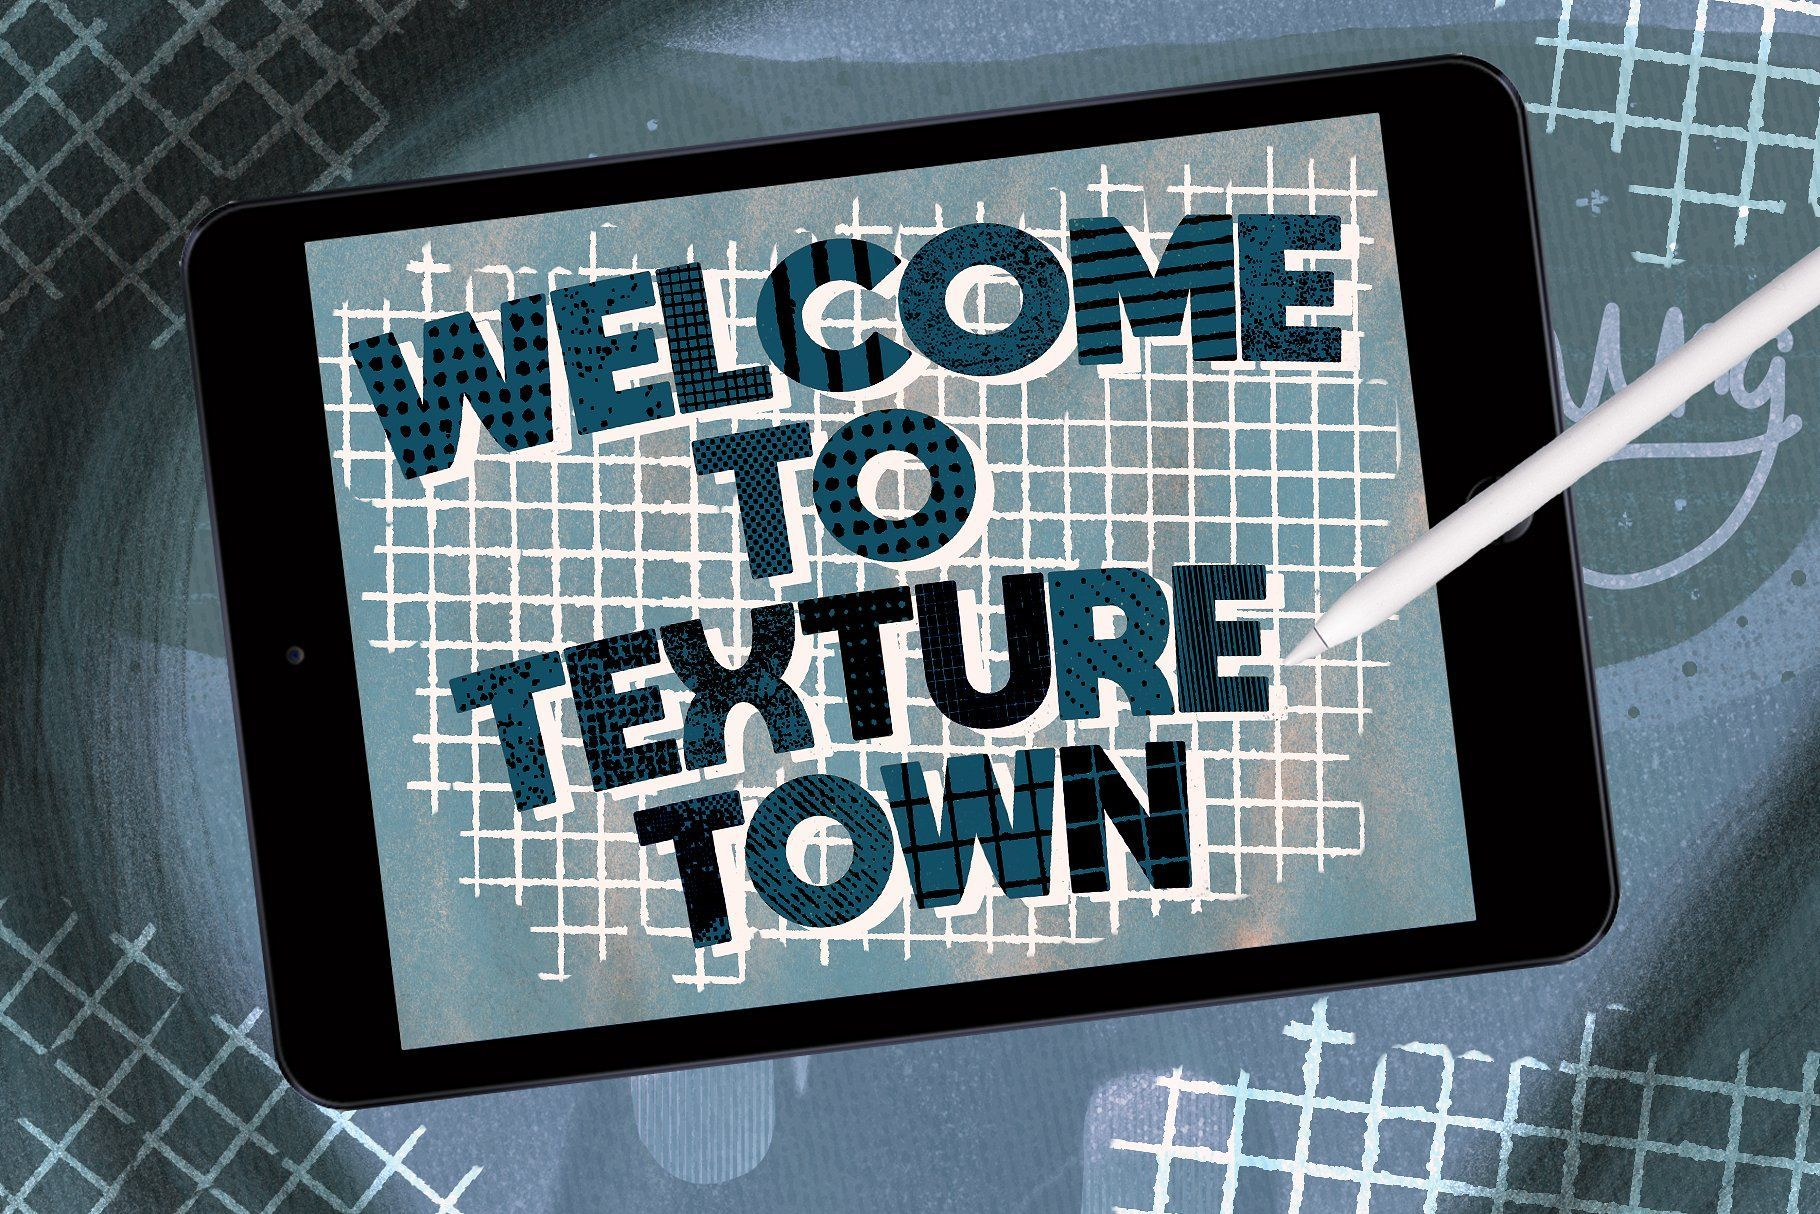 Selection Of 21 Texture Town Brush Set Perfect For Adding